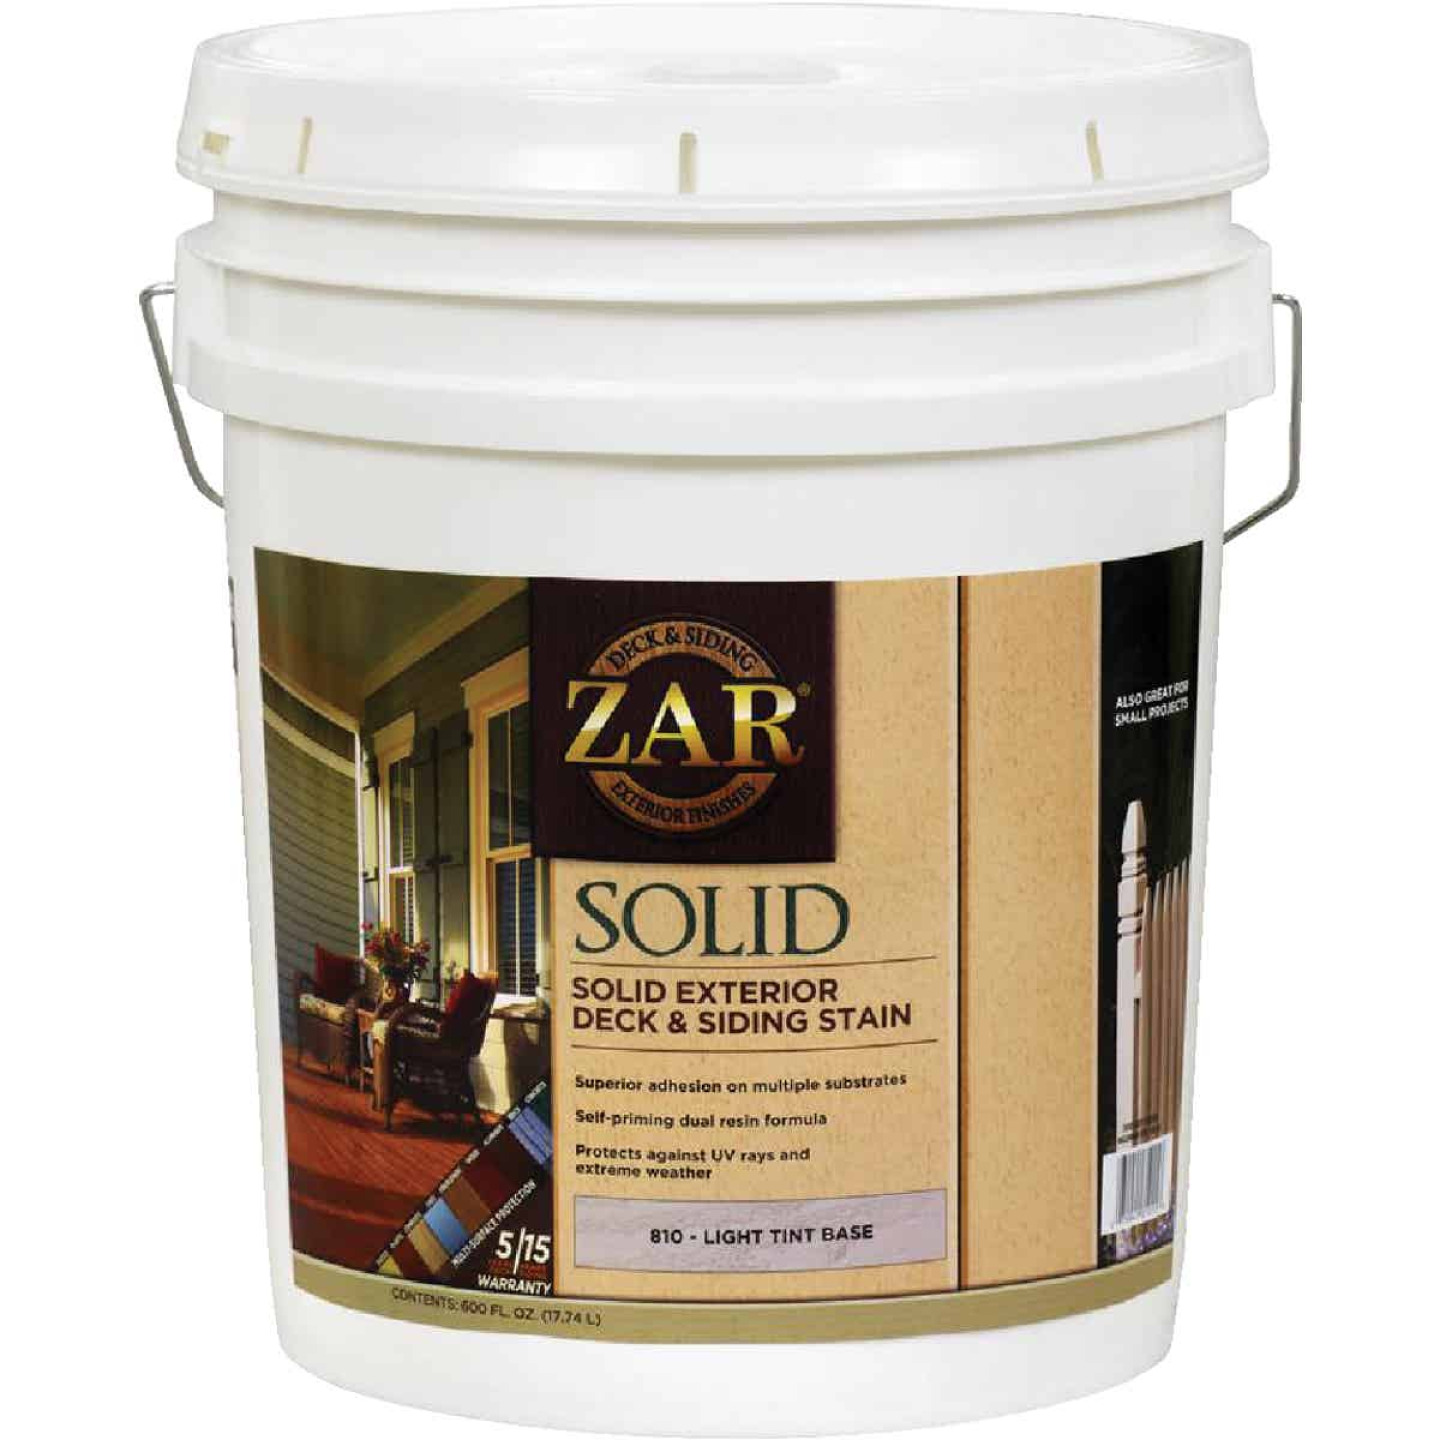 ZAR Solid Deck & Siding Stain, Light Tint Base, 5 Gal. Image 1